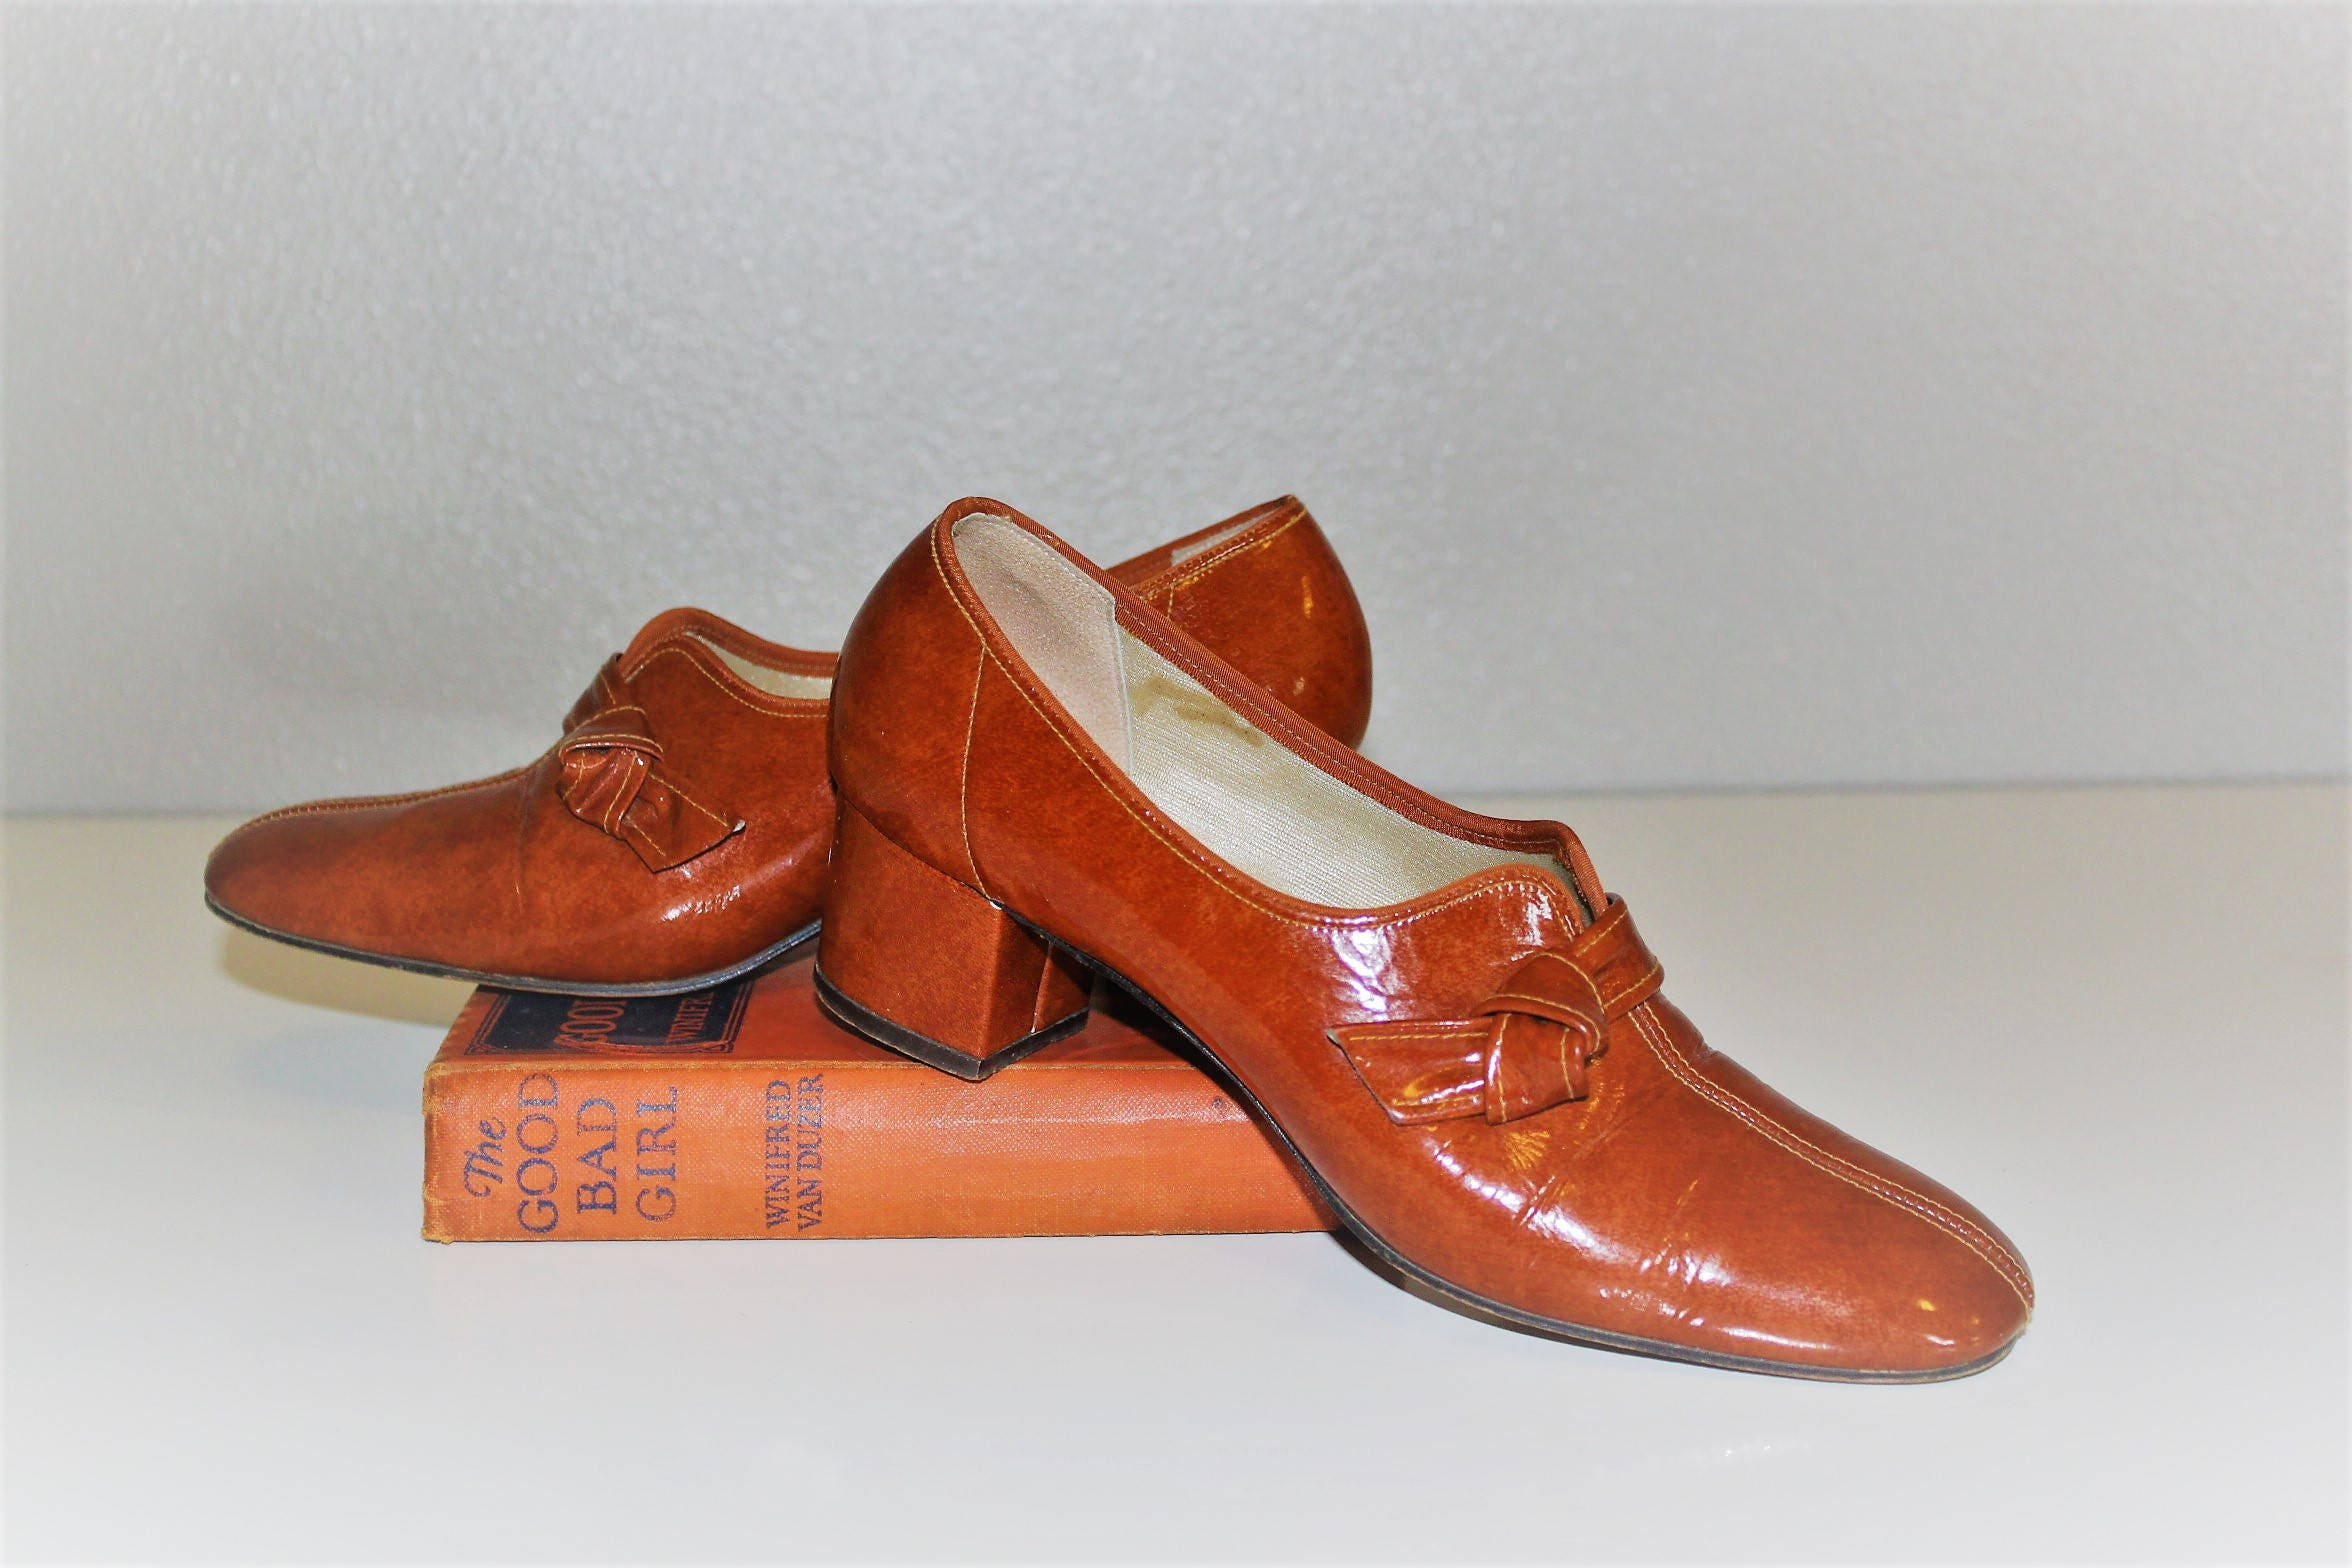 d23f00e53aca0 Vintage 1960's VITALITY Shoes *Pumpkin Patent Leather Pumps *Classy Knotted  Split Toe Dress Shoe *Copper Brown Leather Heels -Women's 6 1/2